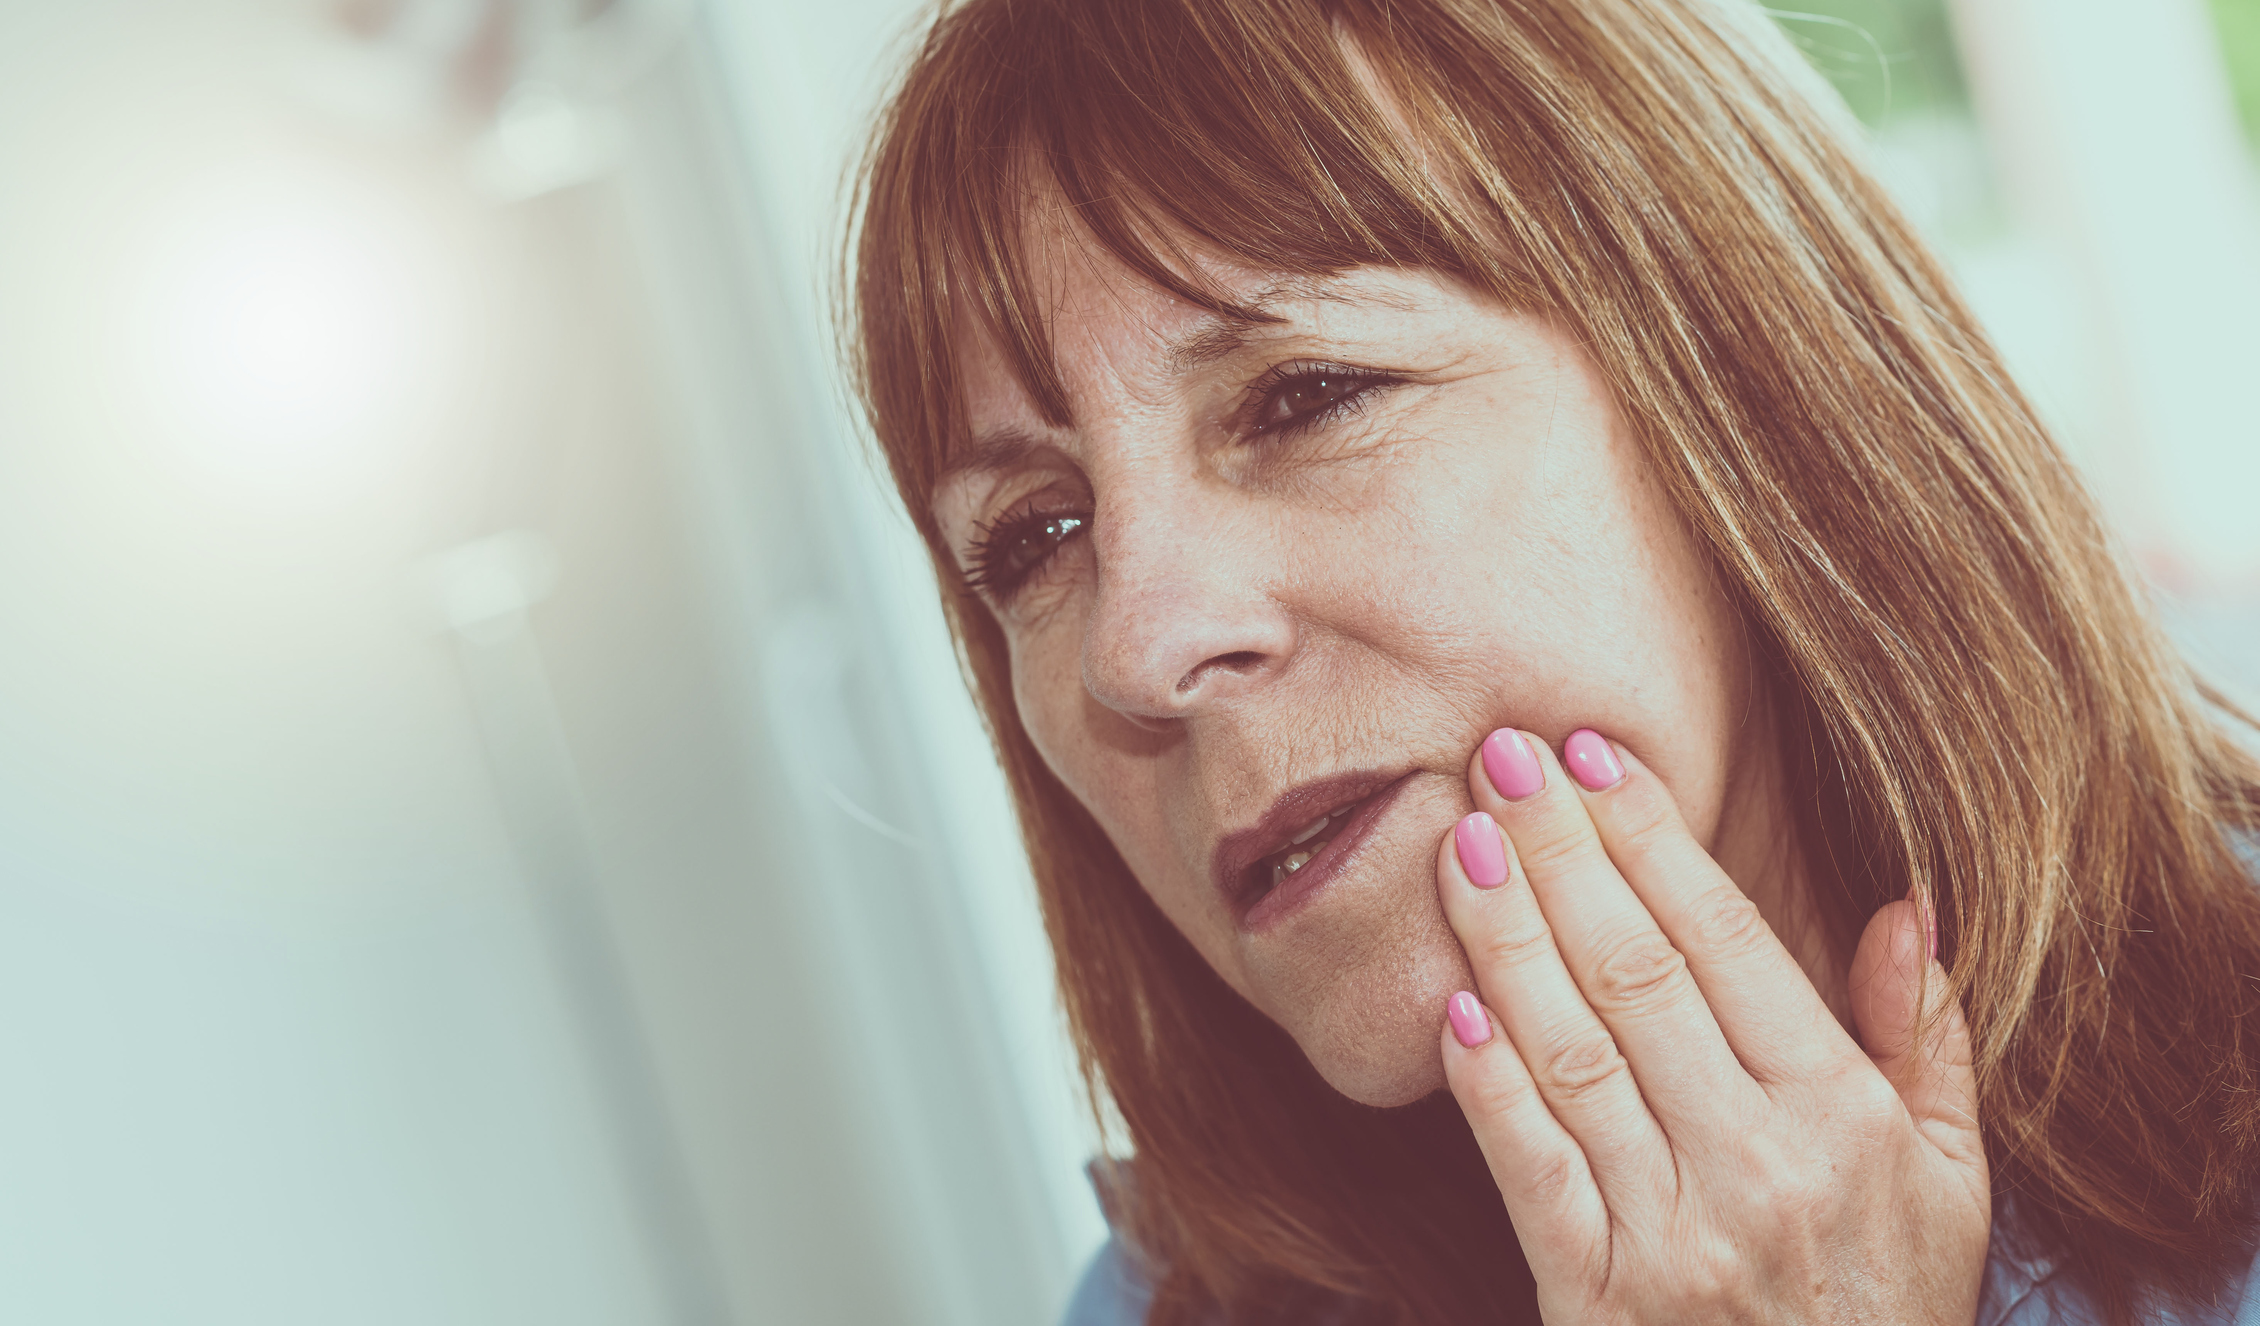 How to handle toothache